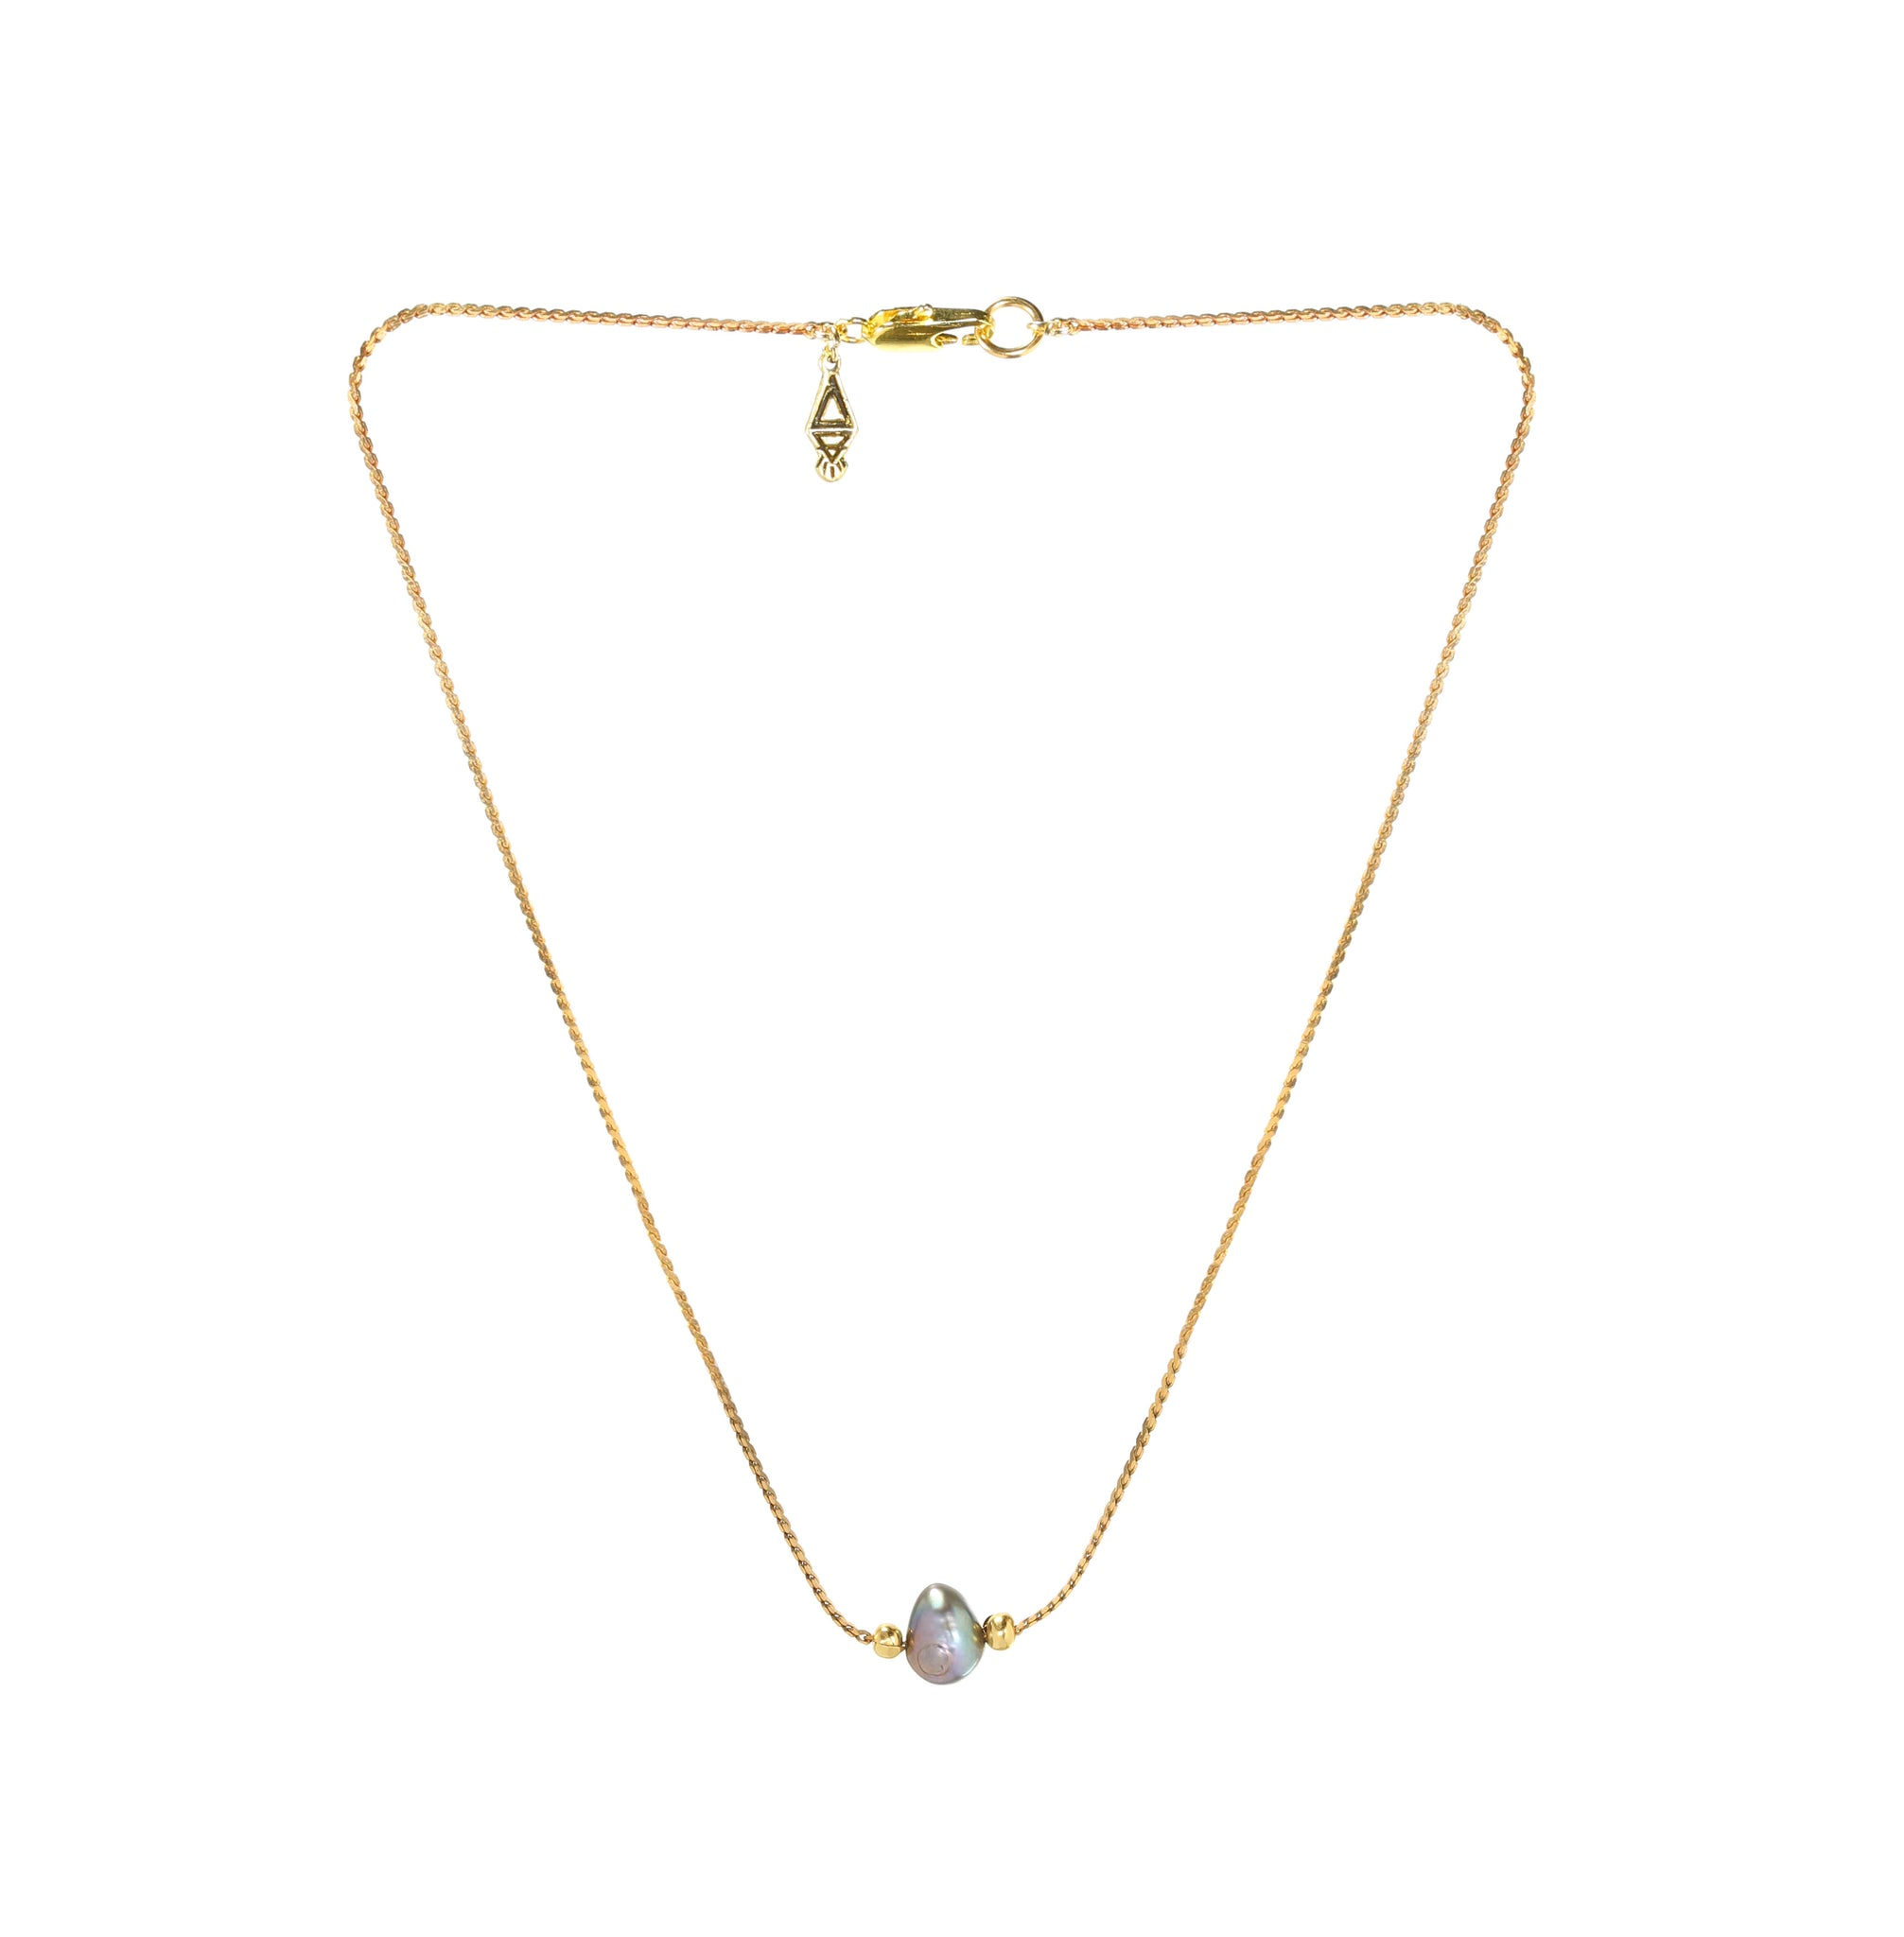 Mignot Necklace